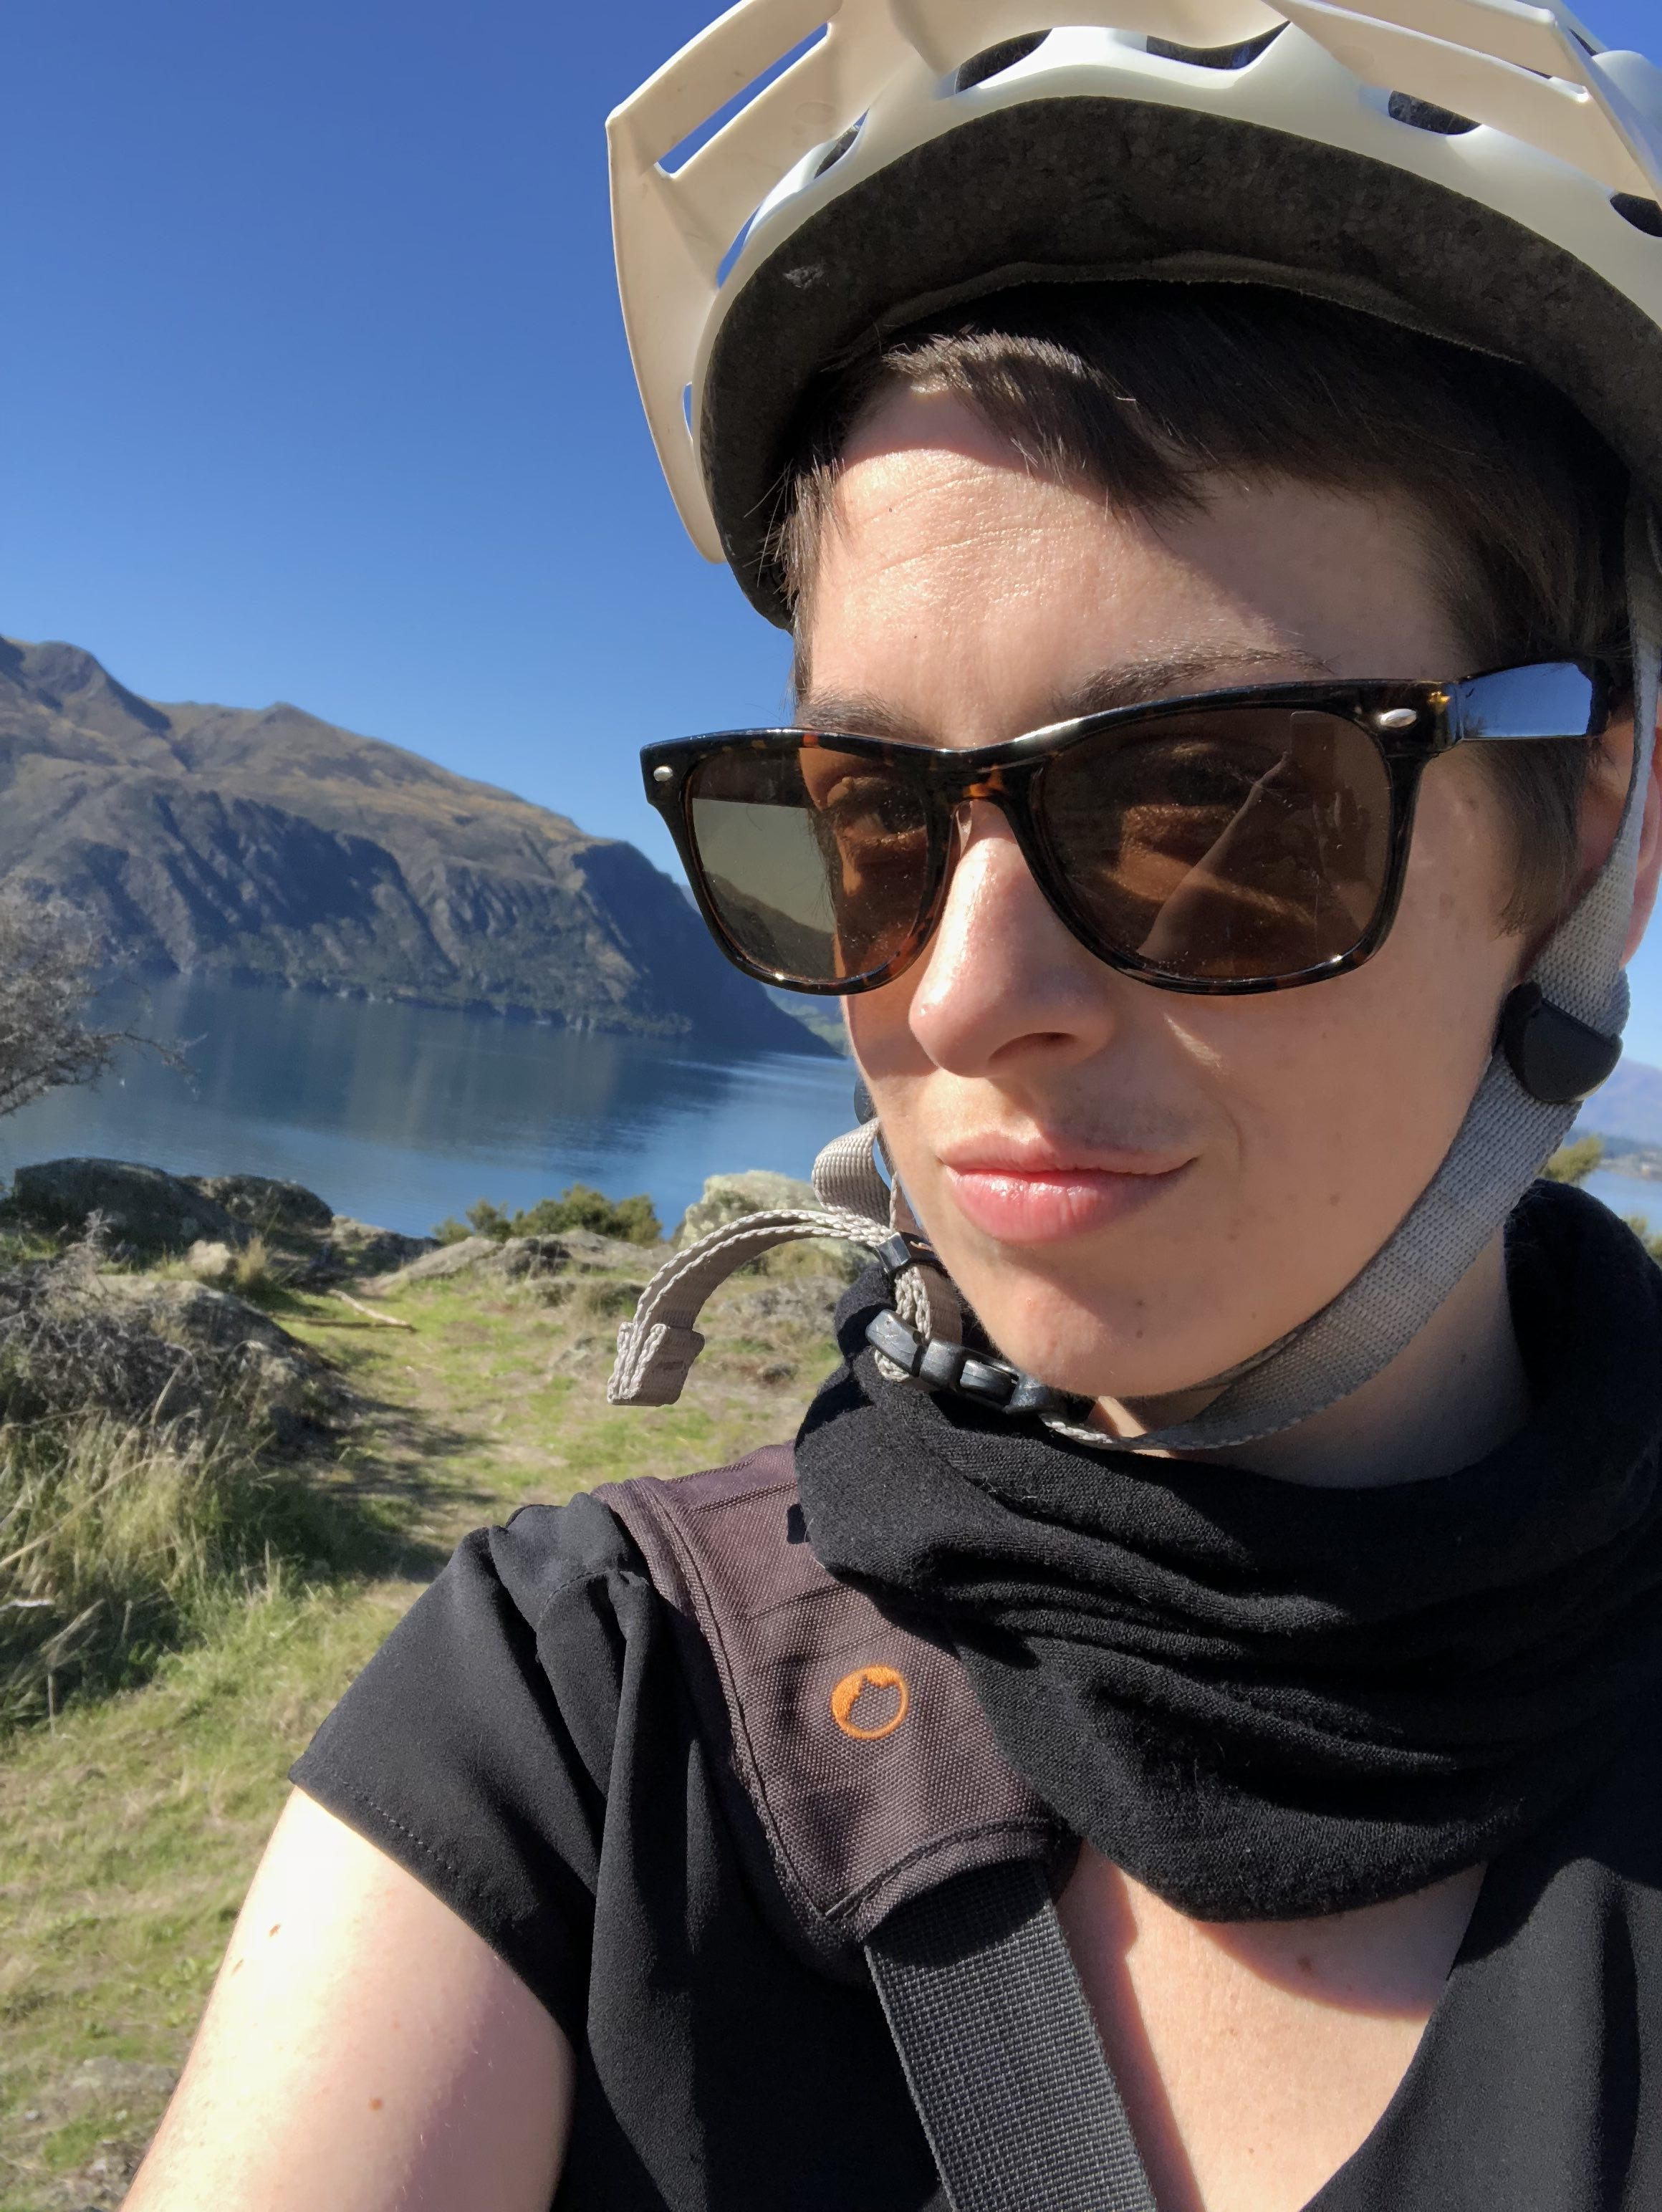 kate-wanaka-biking.jpg